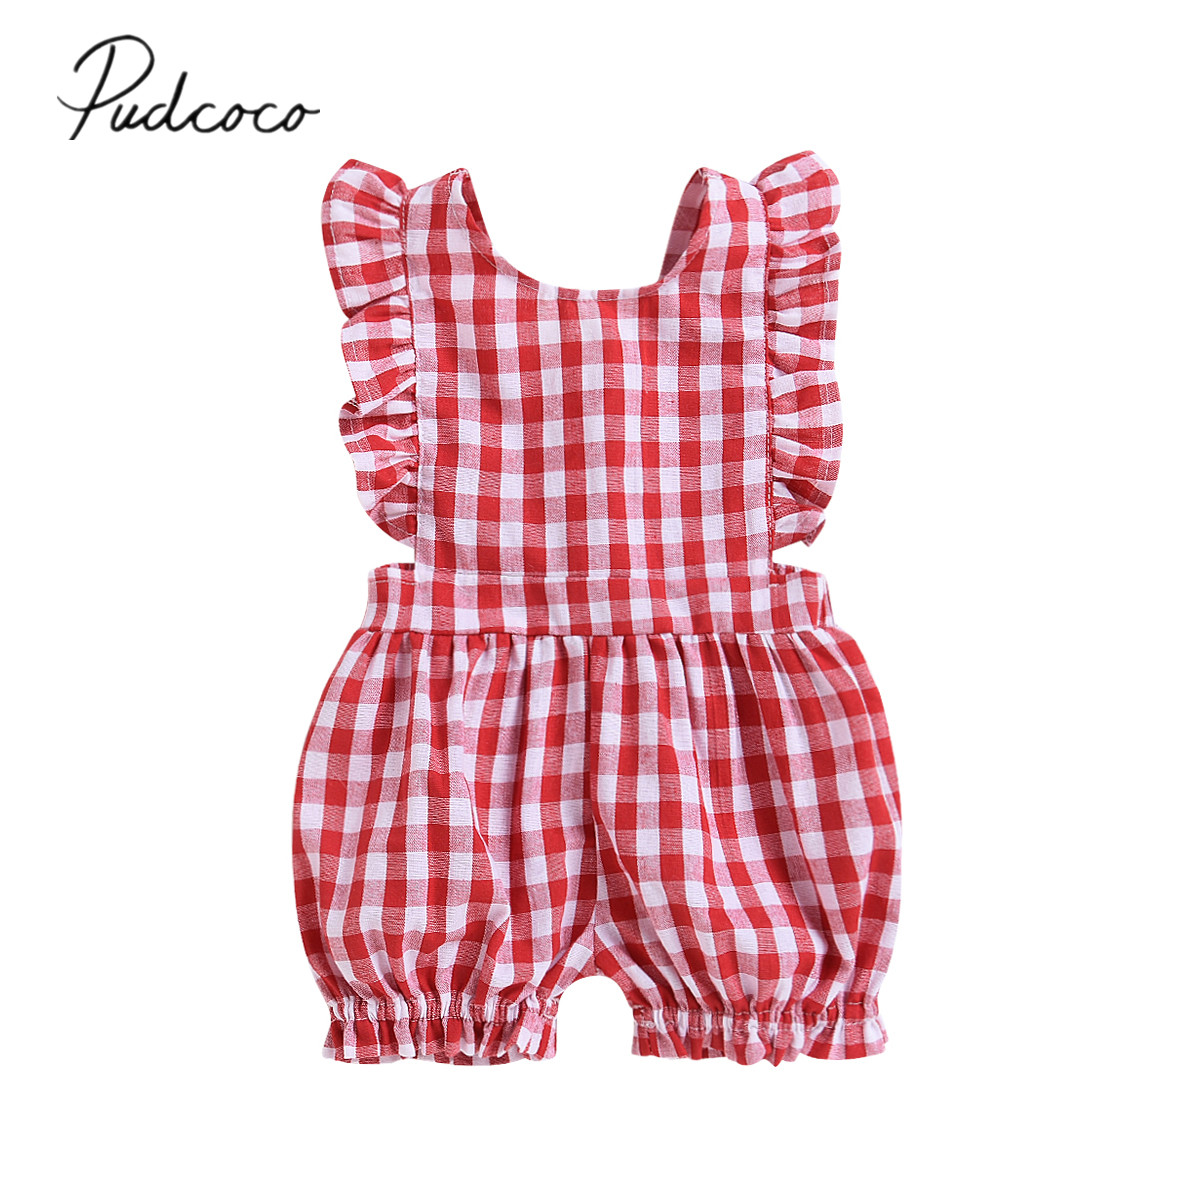 2018 Brand New Toddler Summer Newborn Kid Baby Girls Infant Plaid   Romper   Jumpsuit Checked Clothes Outfit Backless Sunsuit 0-24M